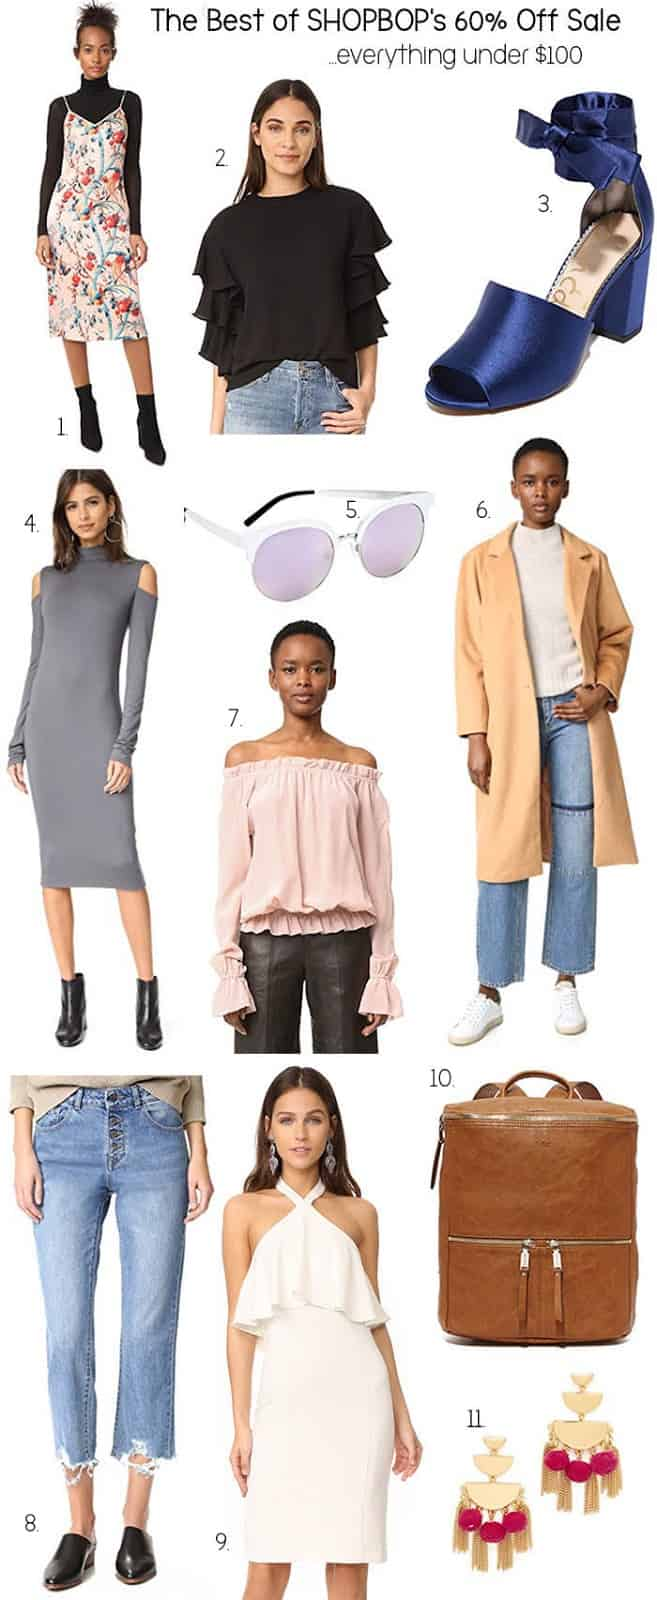 The Best of Shopbop's 60% Off Sale (everything under $100!)